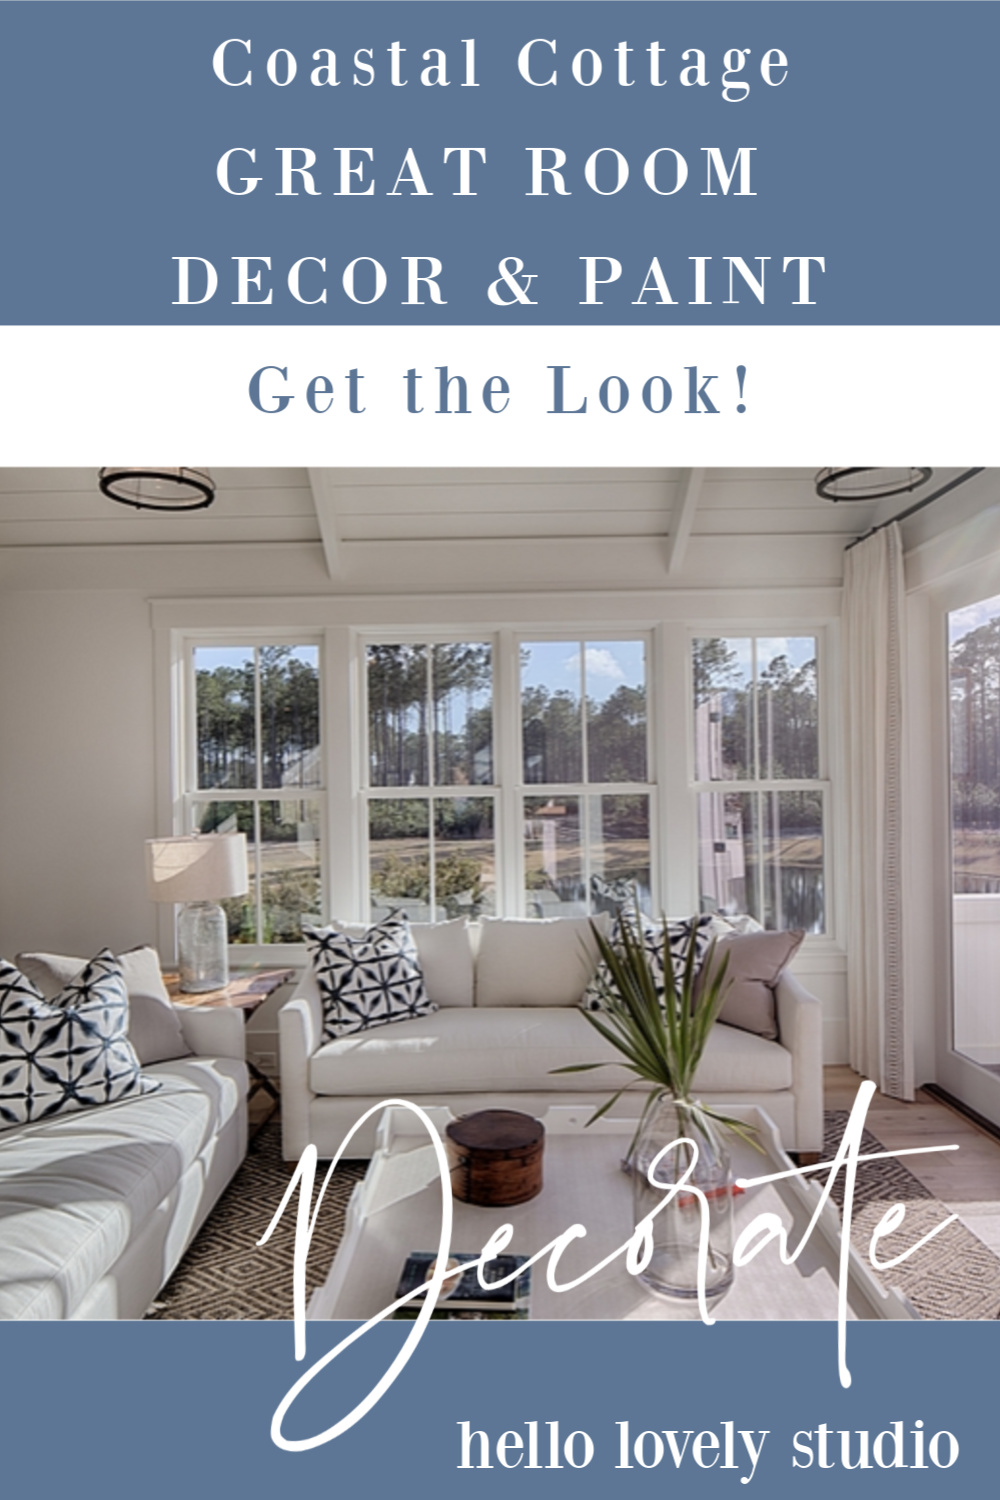 Coastal cottage great room decor and paint color ideas to get the look of a gorgeous interior by Lisa Furey. #getthelook #interiordesign #coastalstyle #coastalcottage #greatroom #decoratingideas #homedecor